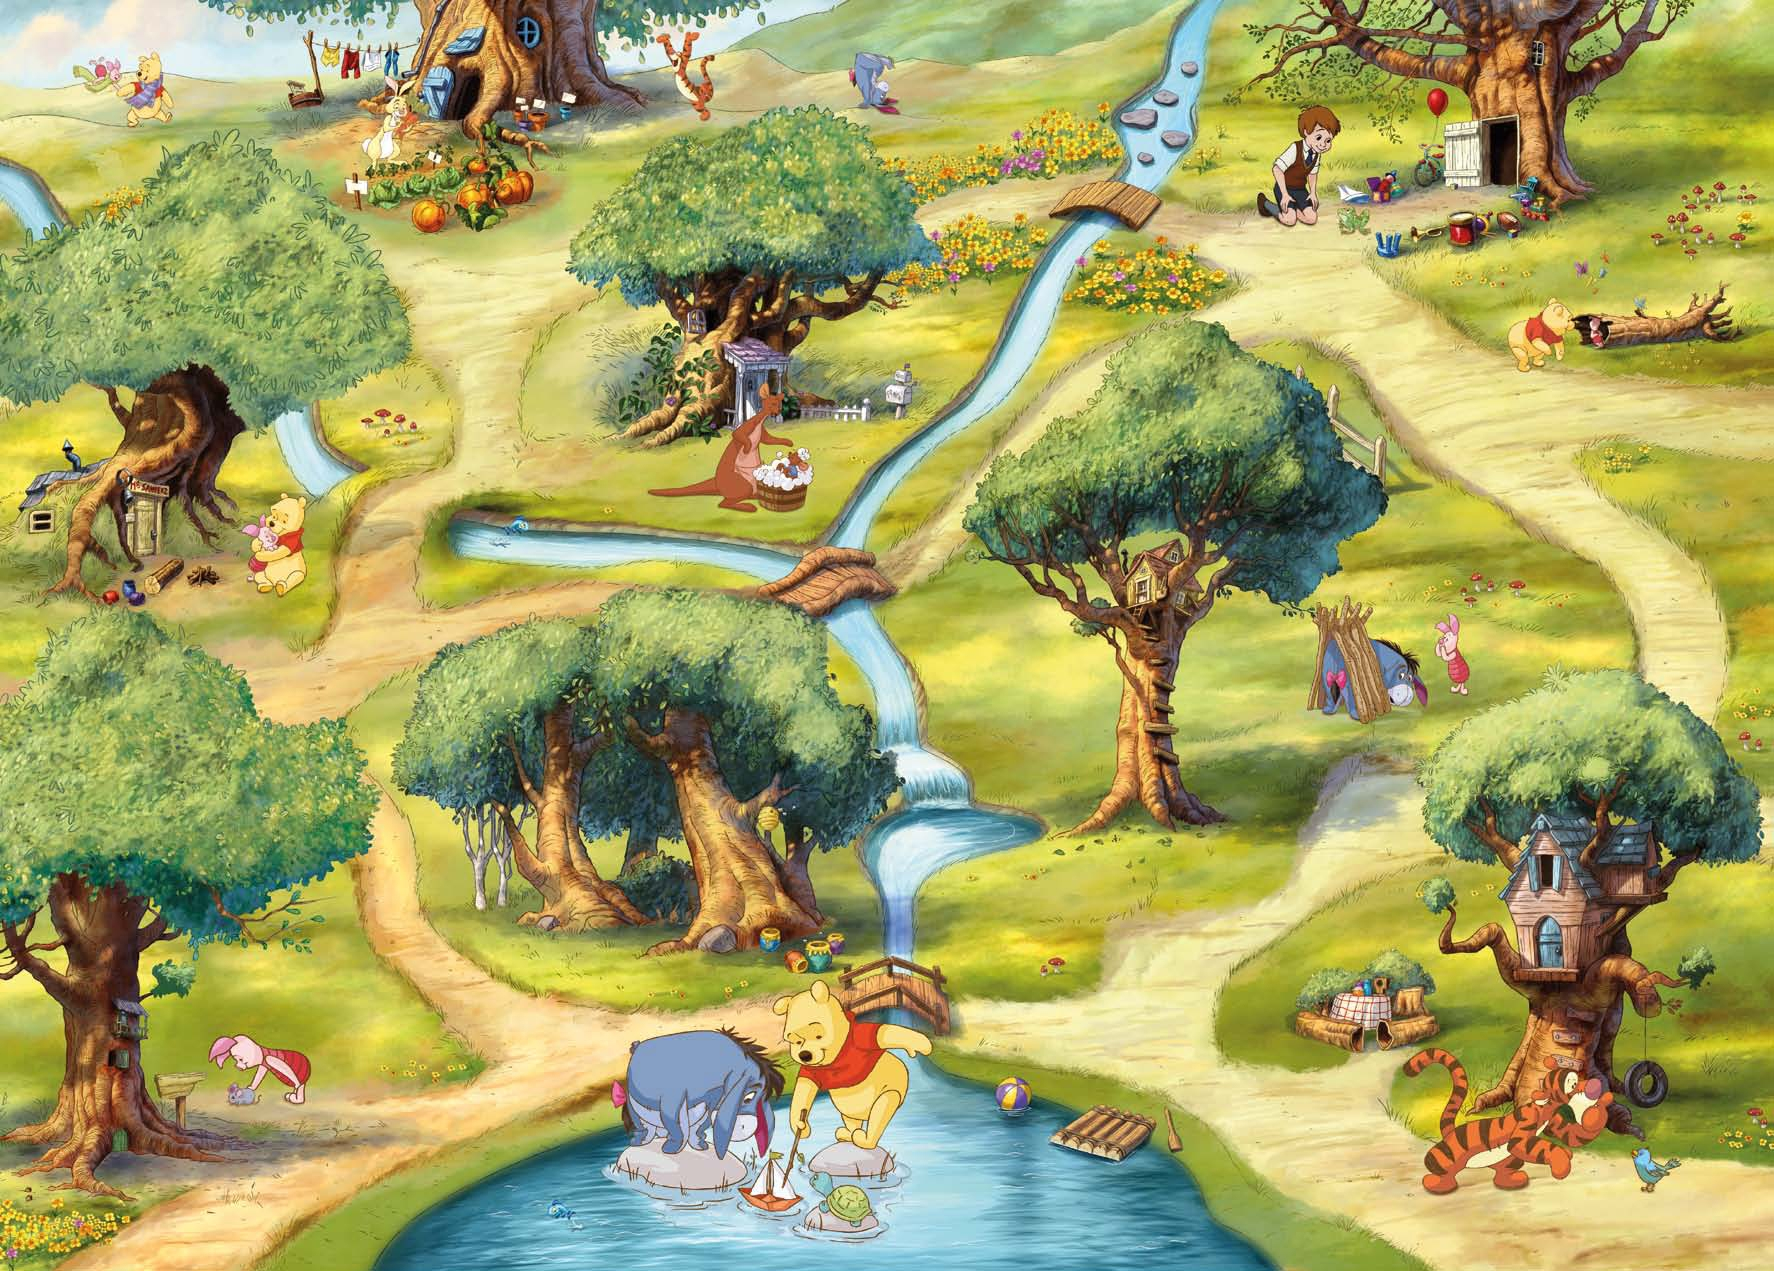 Poster mural Le Monde De Winnie l'Ourson - Panoramique Disney - KOMAR